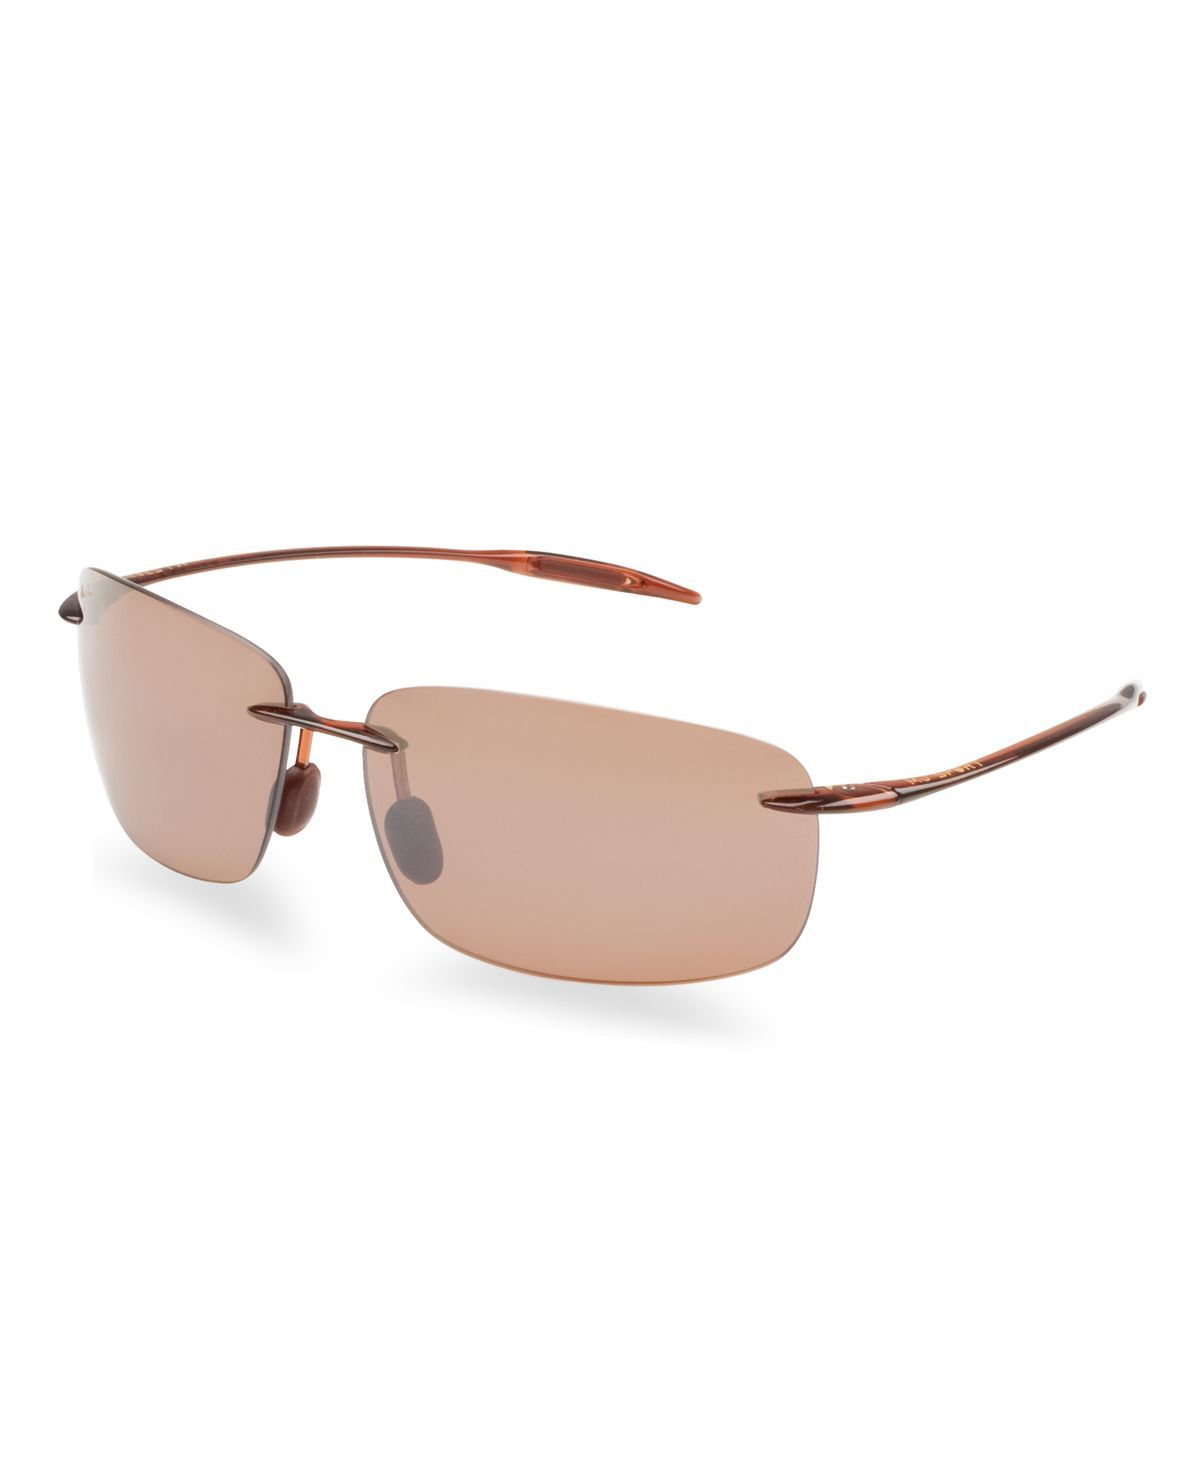 9e342497ae7 Maui Jim Sunglasses feature PolarizedPlus 2 technology